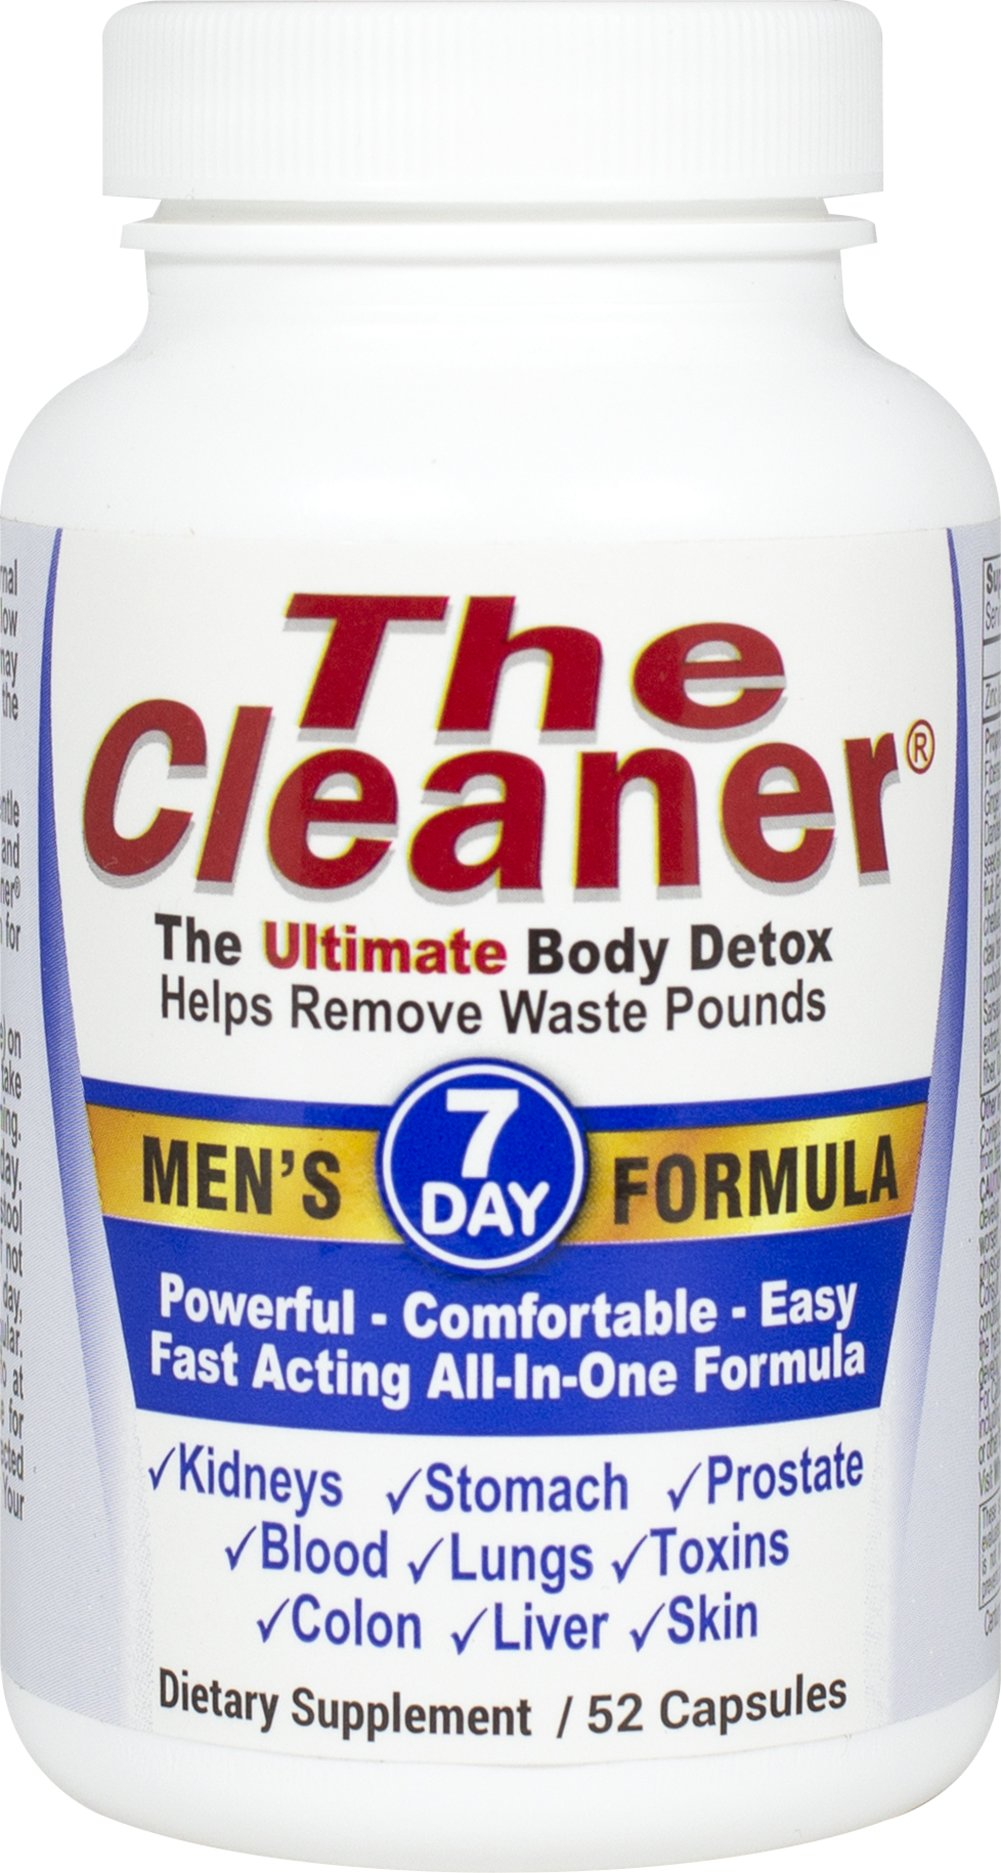 The Cleaner® 7 Day Men'S Formula <p><b>From the Manufacturer's Label: </p></b><p>The Cleaner® is fast and powerful yet gentle enough to allow you to travel, work and continue your normal routine. The Cleaner® uses vegetable capsules instead of gelatin for those who desire an animal free detox.</p><p>Are you troubled by constipation, excessive gas, a bloated stomach or recurring headaches? Are you carrying unwanted pounds, especiall